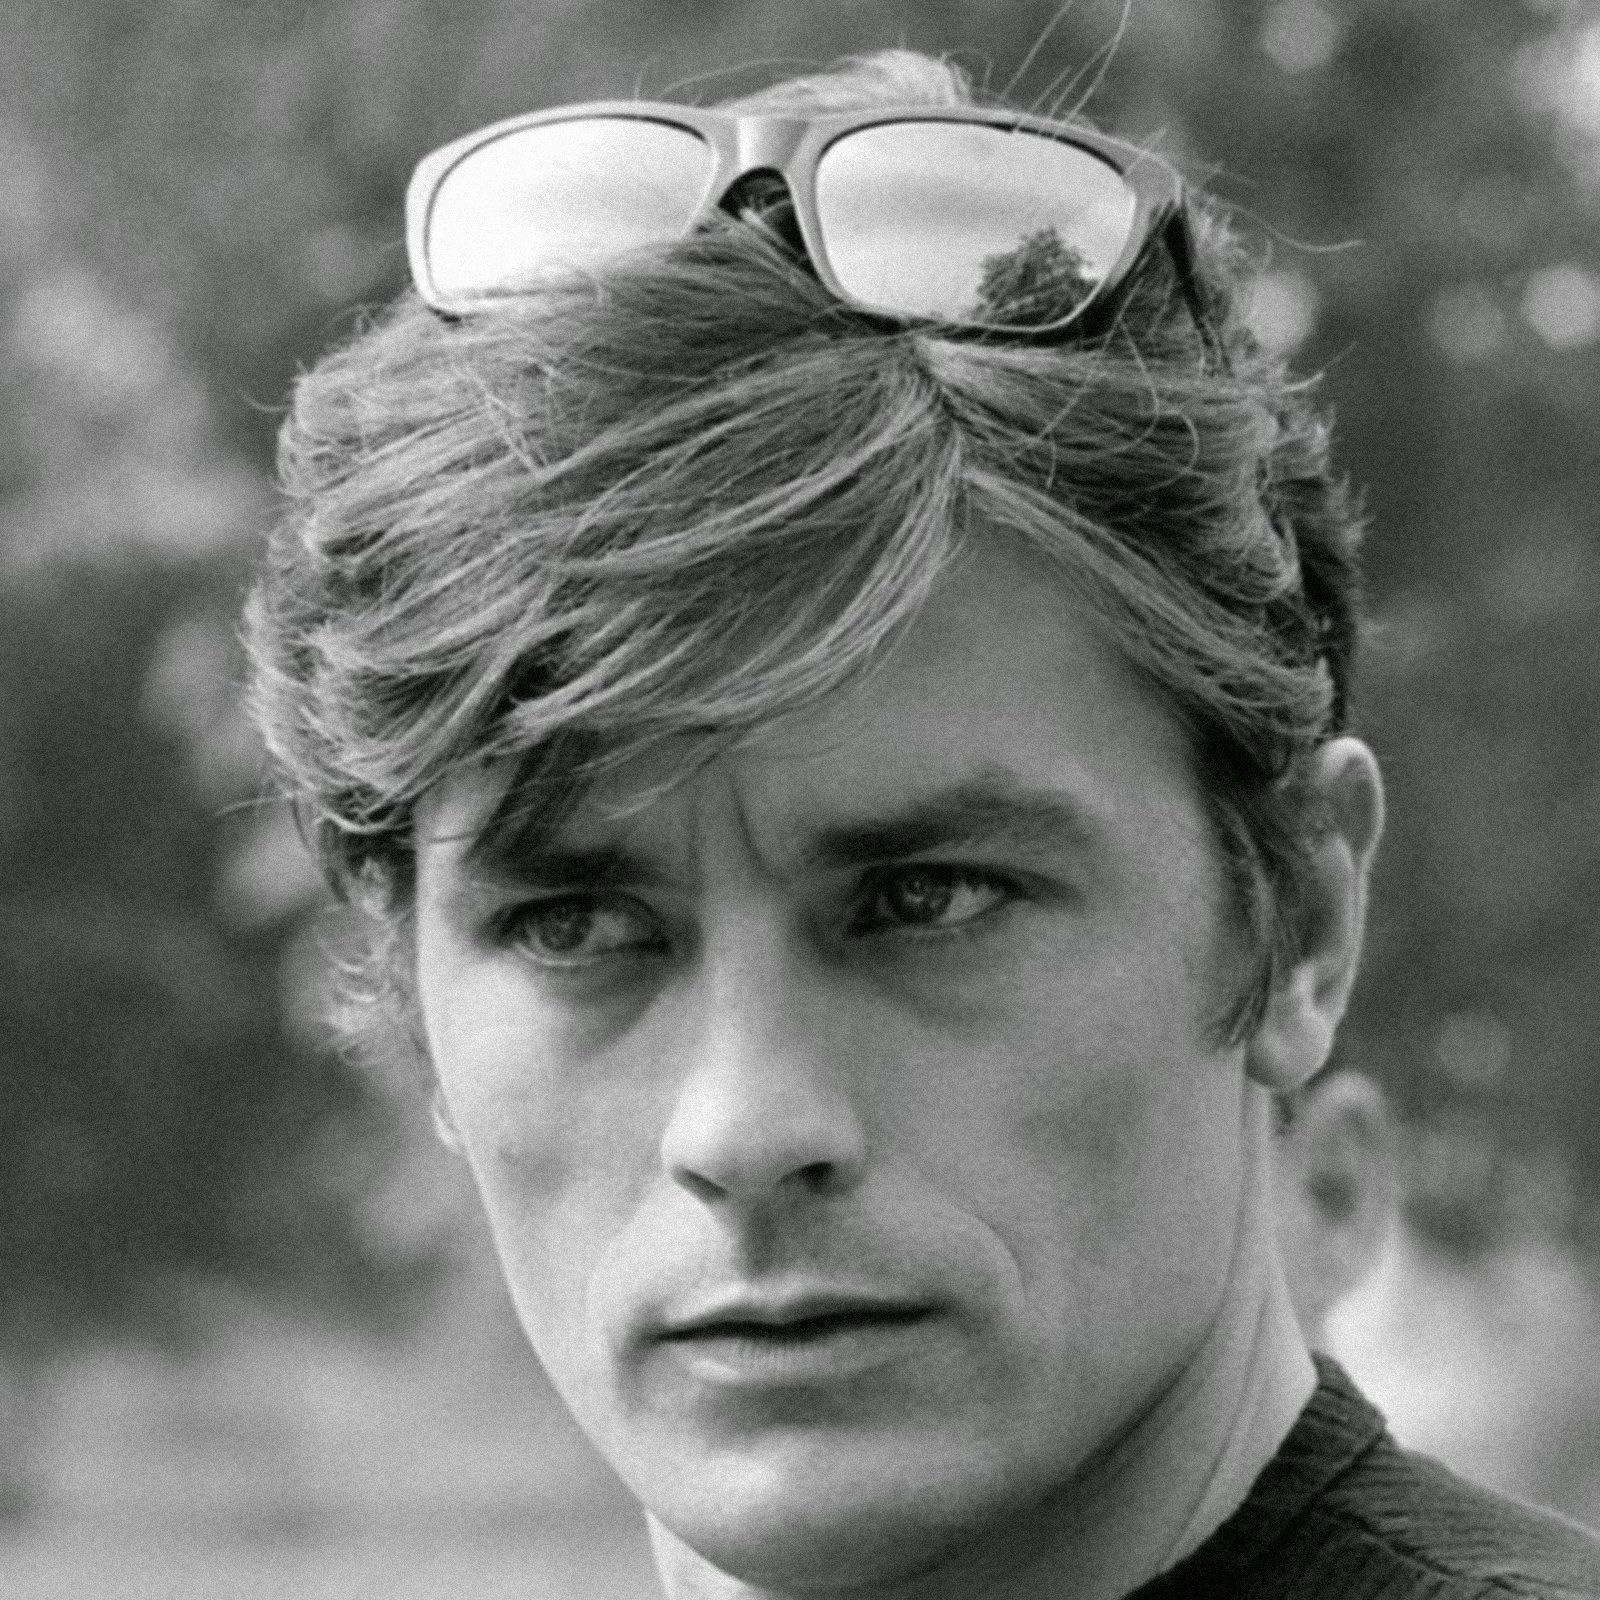 Happy birthday to Alain Delon, one of the most unreasonably handsome actors to ever grace the screen